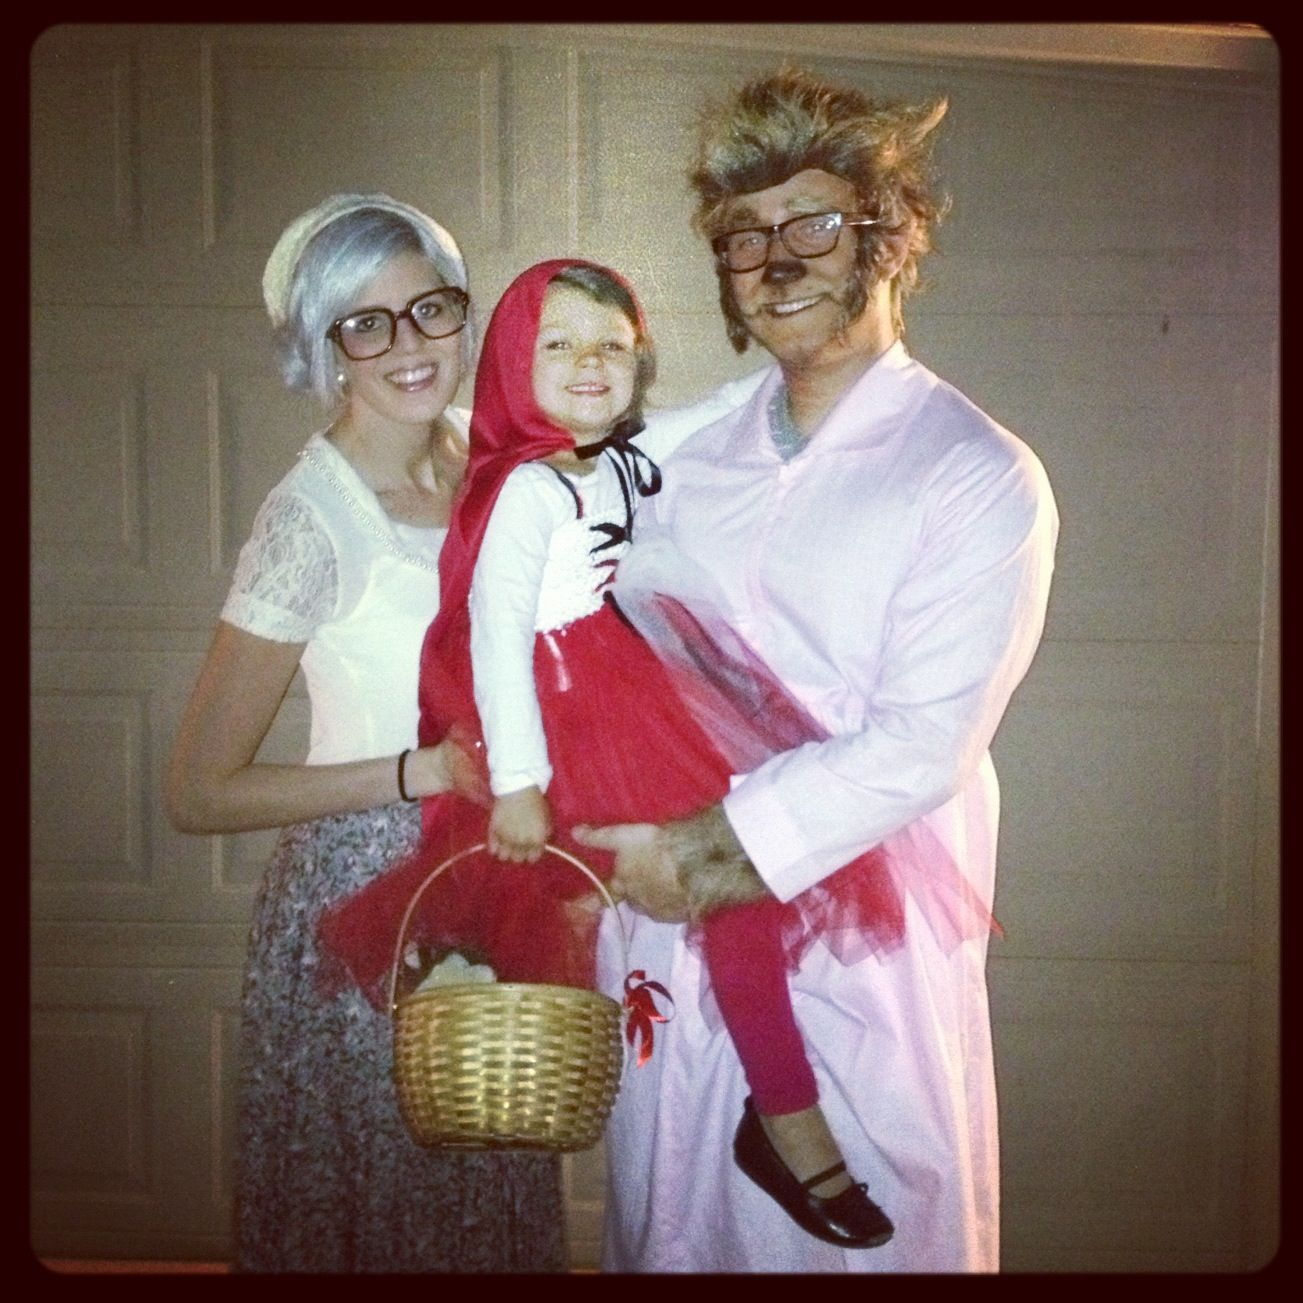 Little Red Riding Hood Grandma And The Bad Wolf Matching Family Costumes